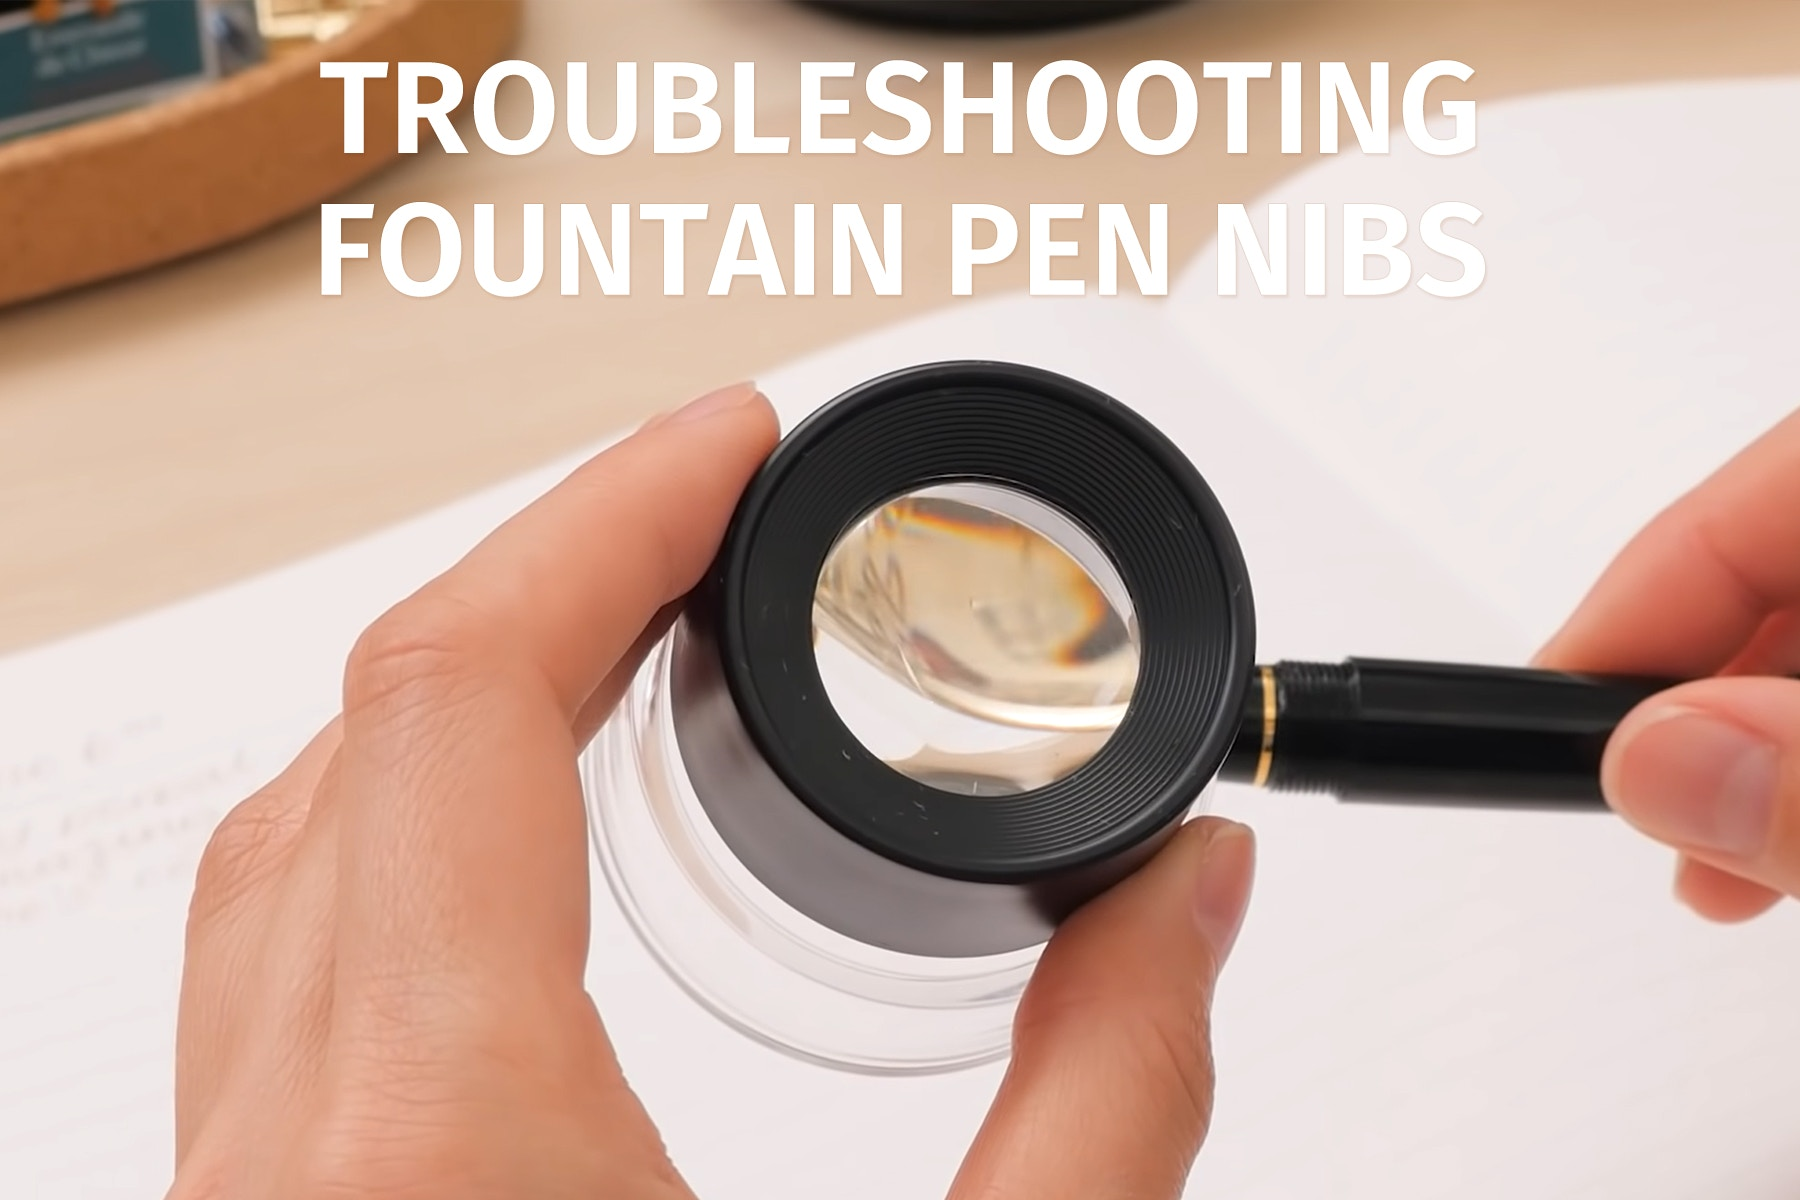 Guide to Fountain Pen Nibs: Troubleshooting Tips and Tricks | JetPens